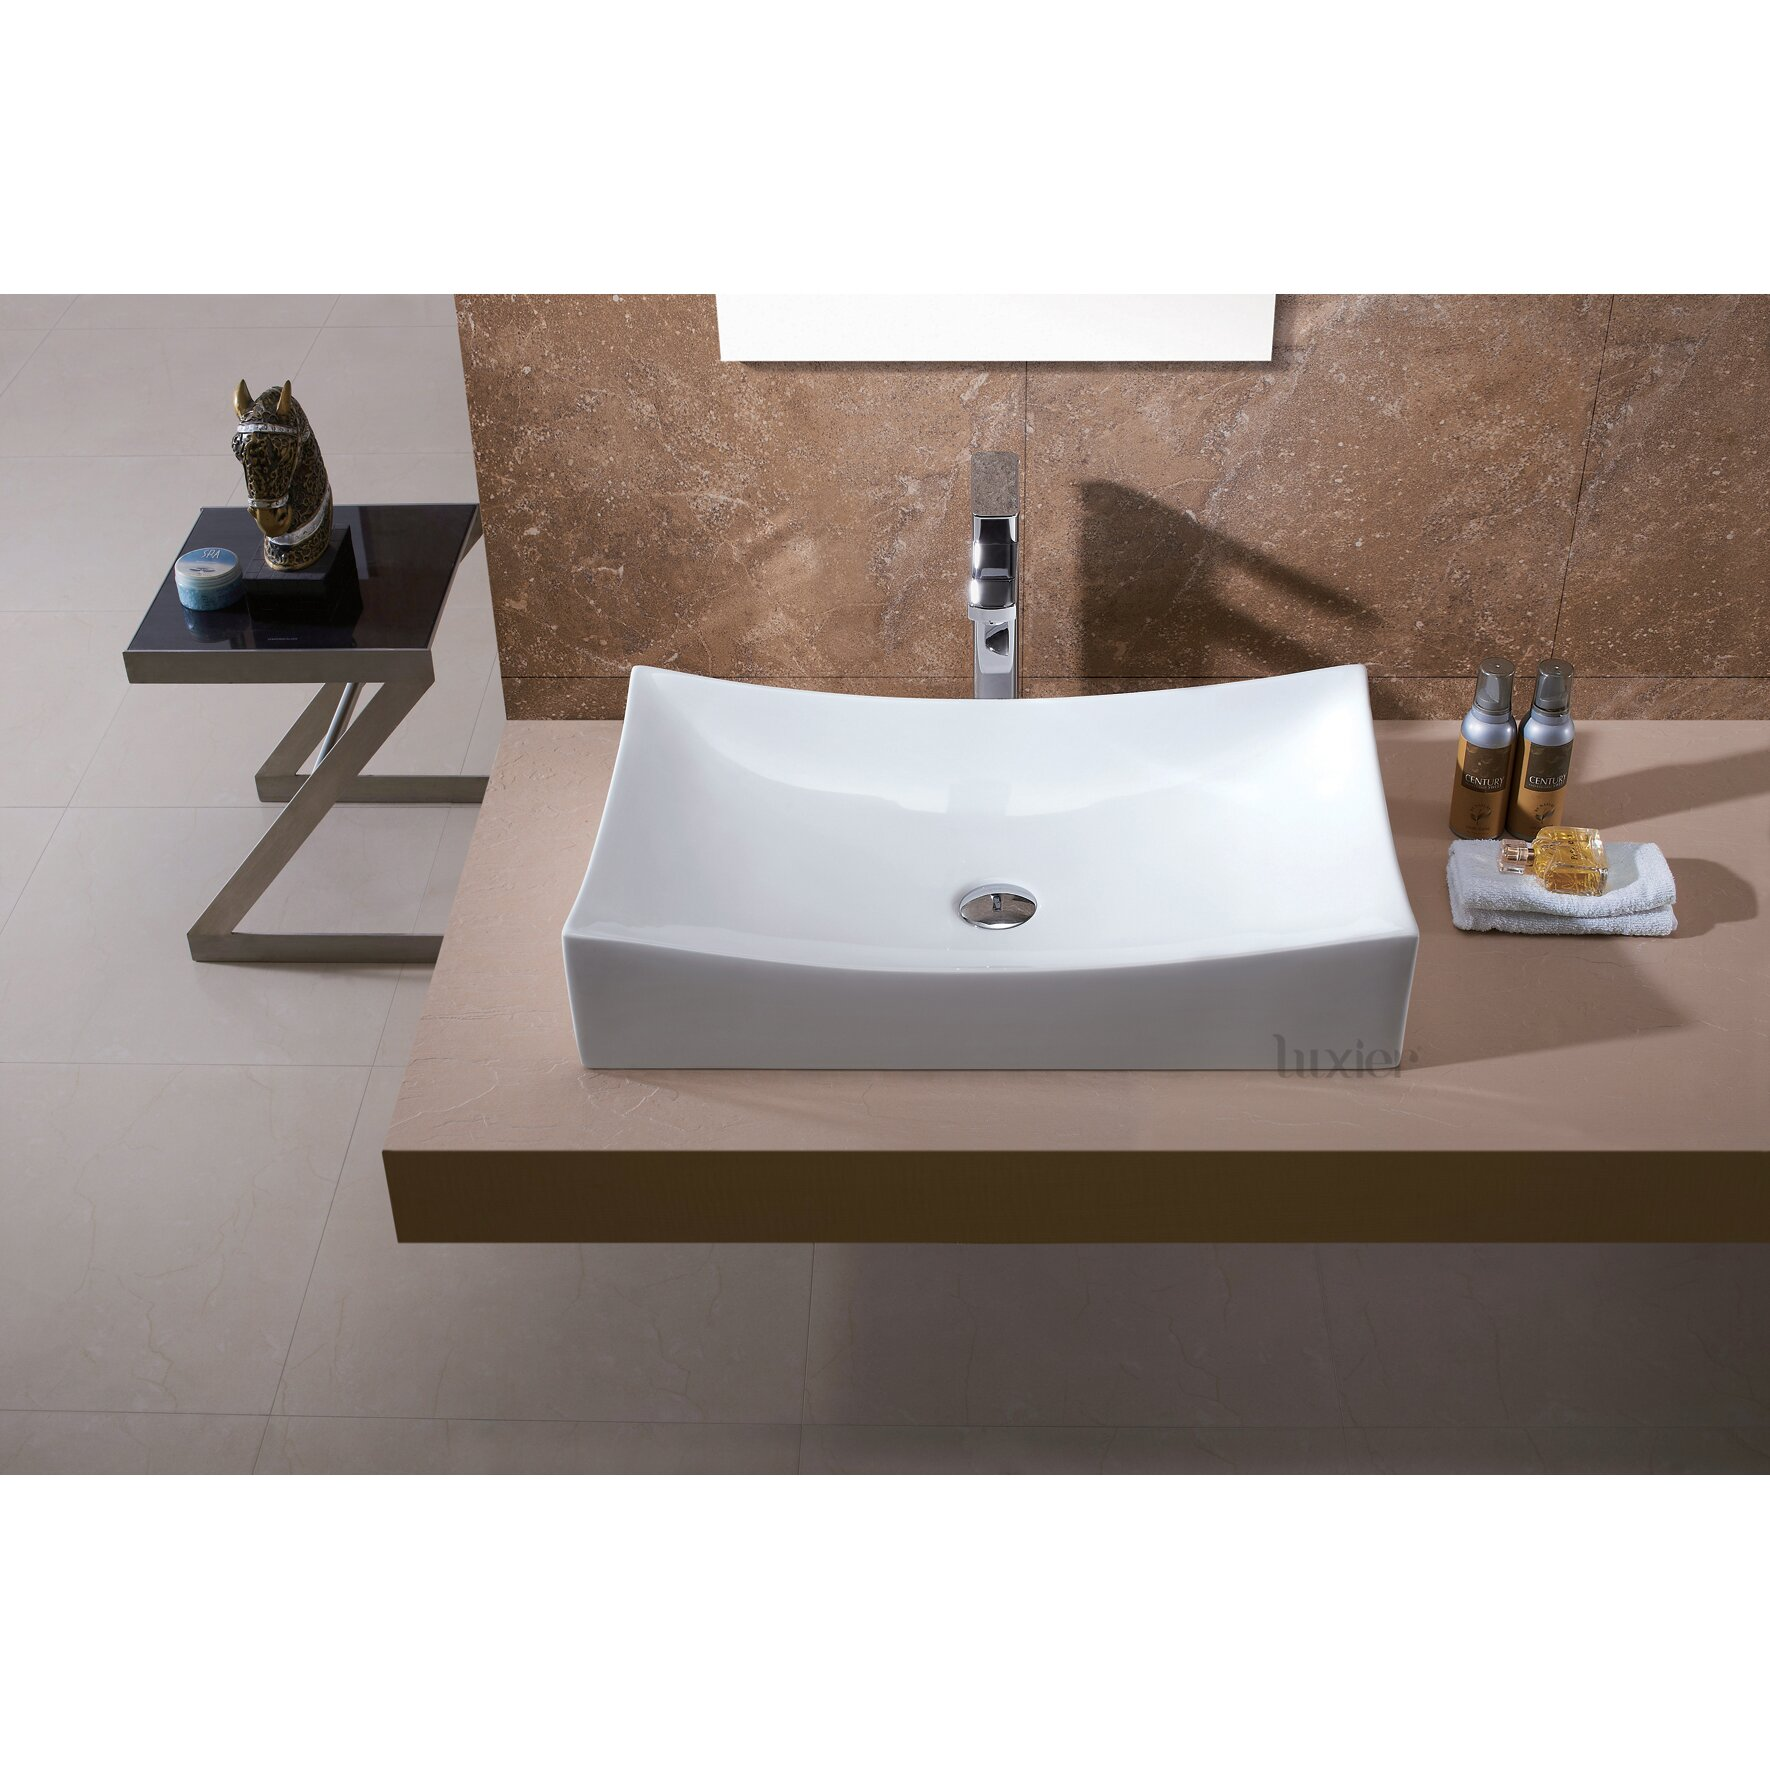 Wayfair Bathroom Vanity >> Luxier L-001 Bathroom Porcelain Ceramic Vessel Vanity Sink ...